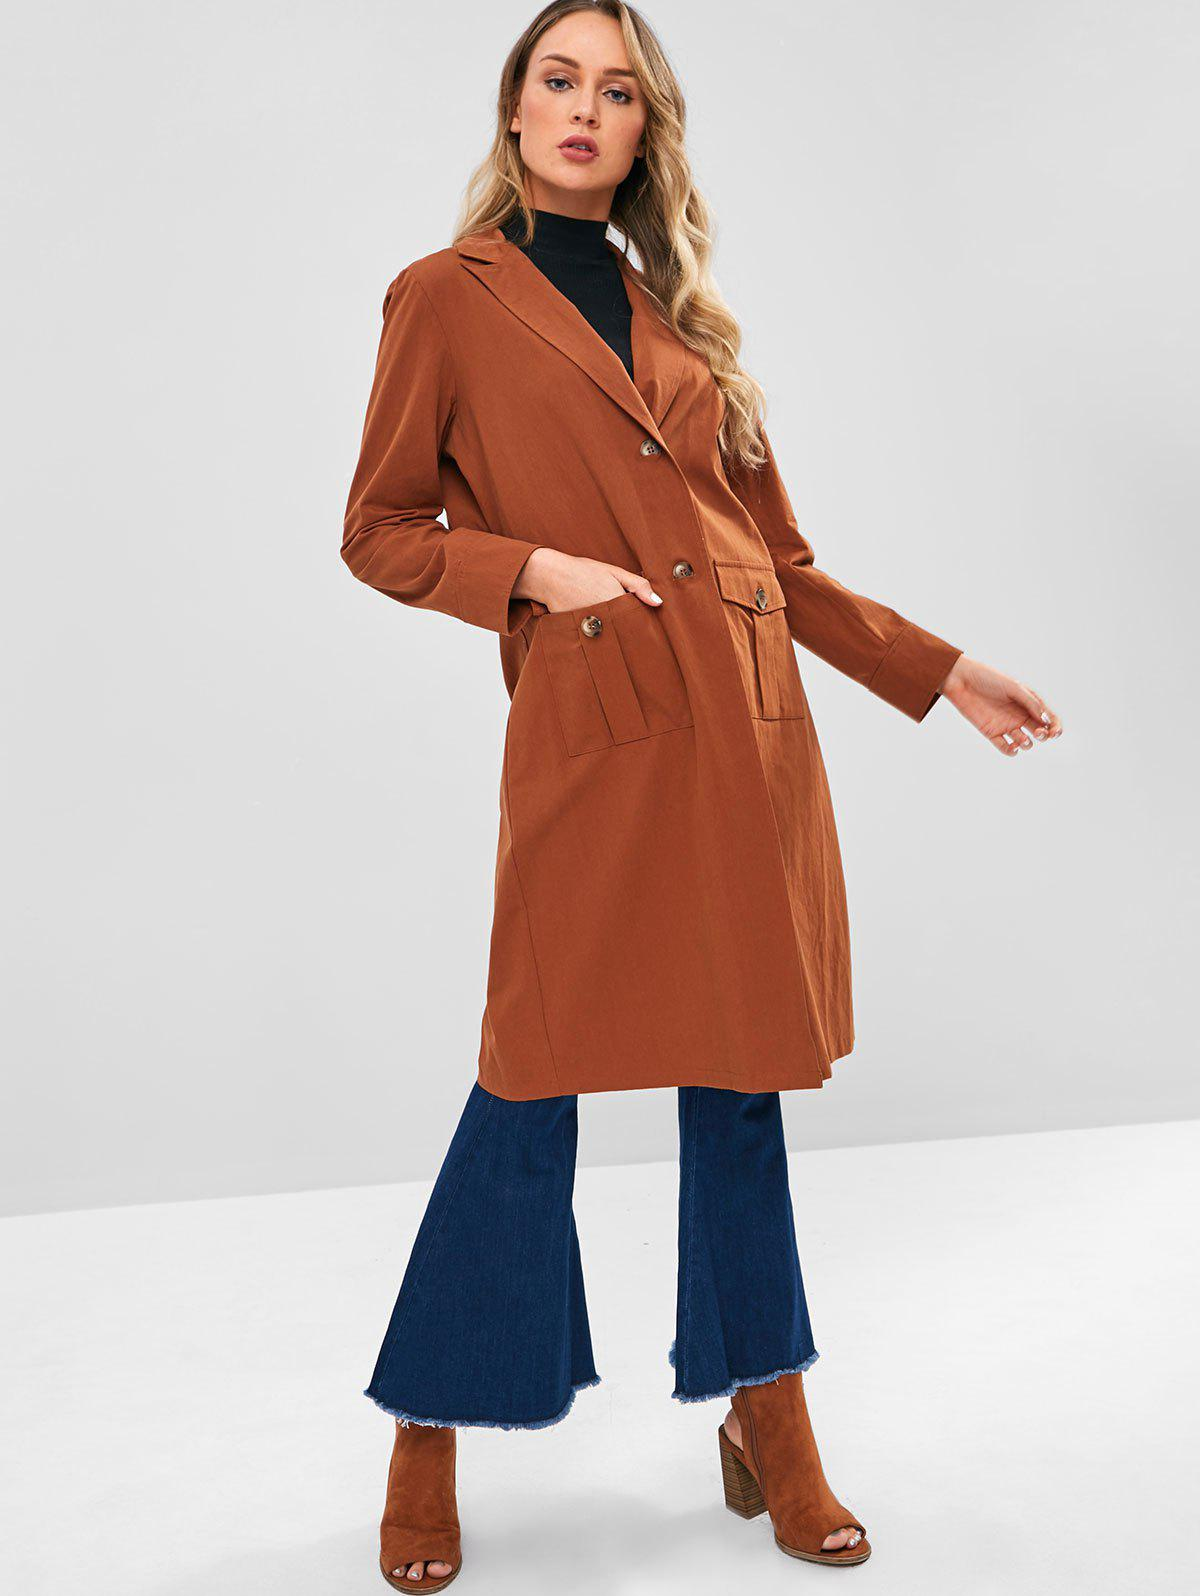 ZAFUL Slit Button Up Trench Coat, Light brown